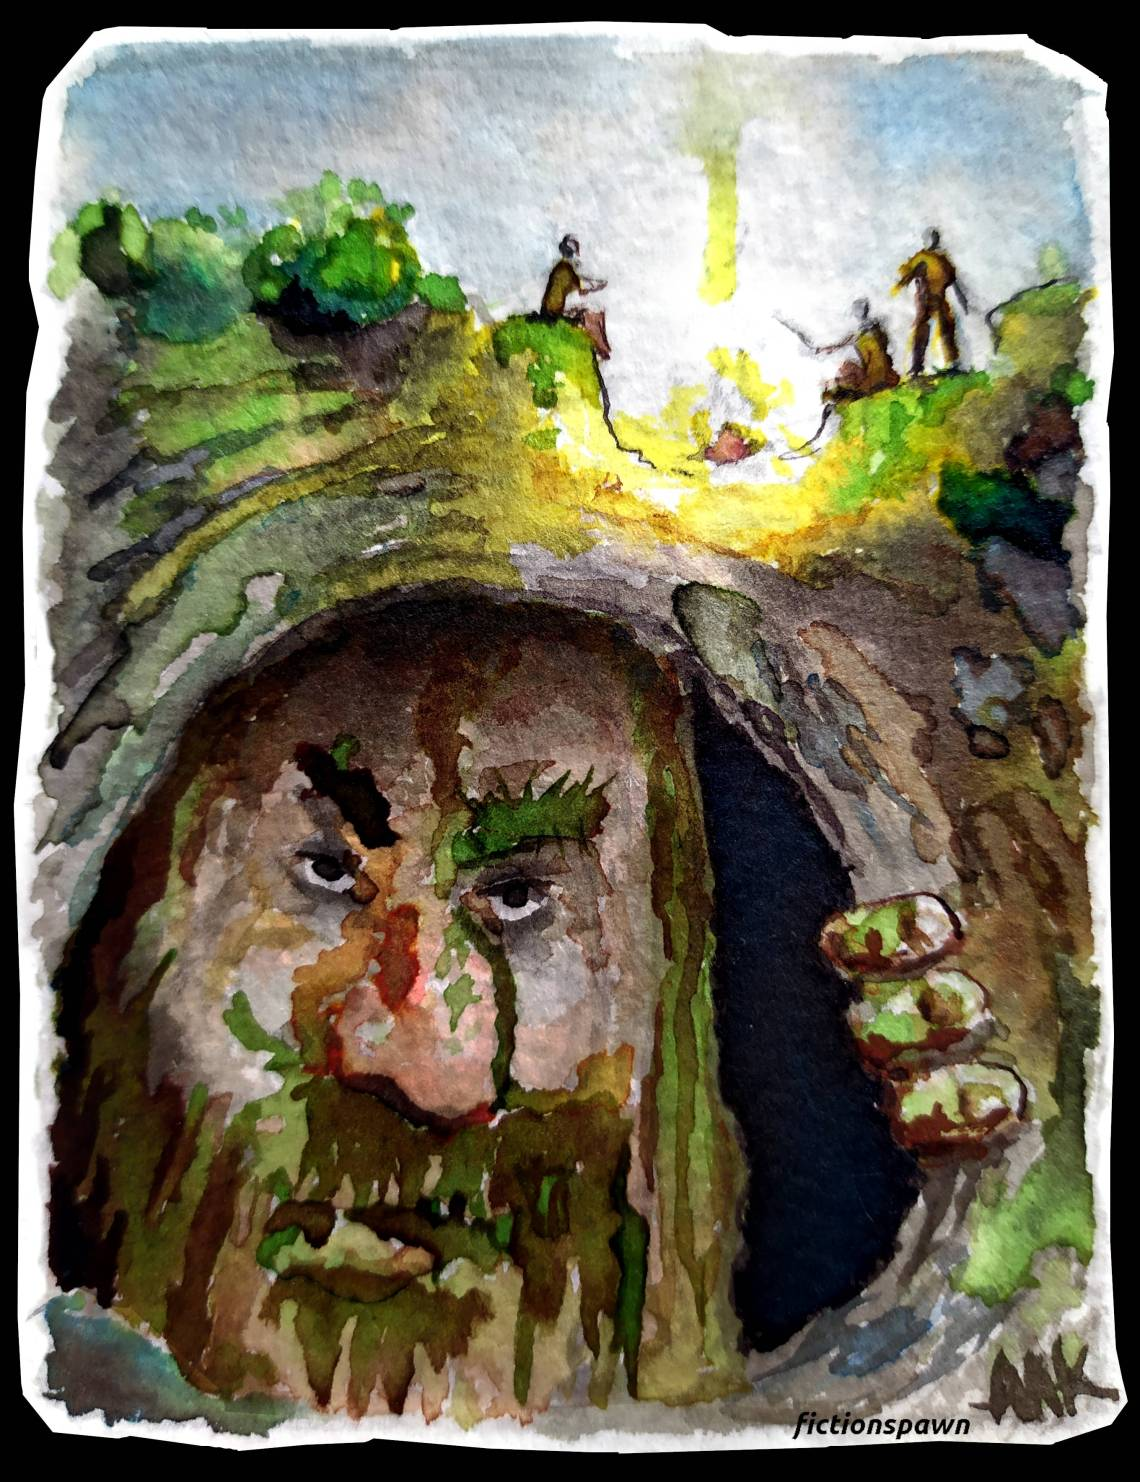 A troll listening to a bondfire story fictionspawn Aak